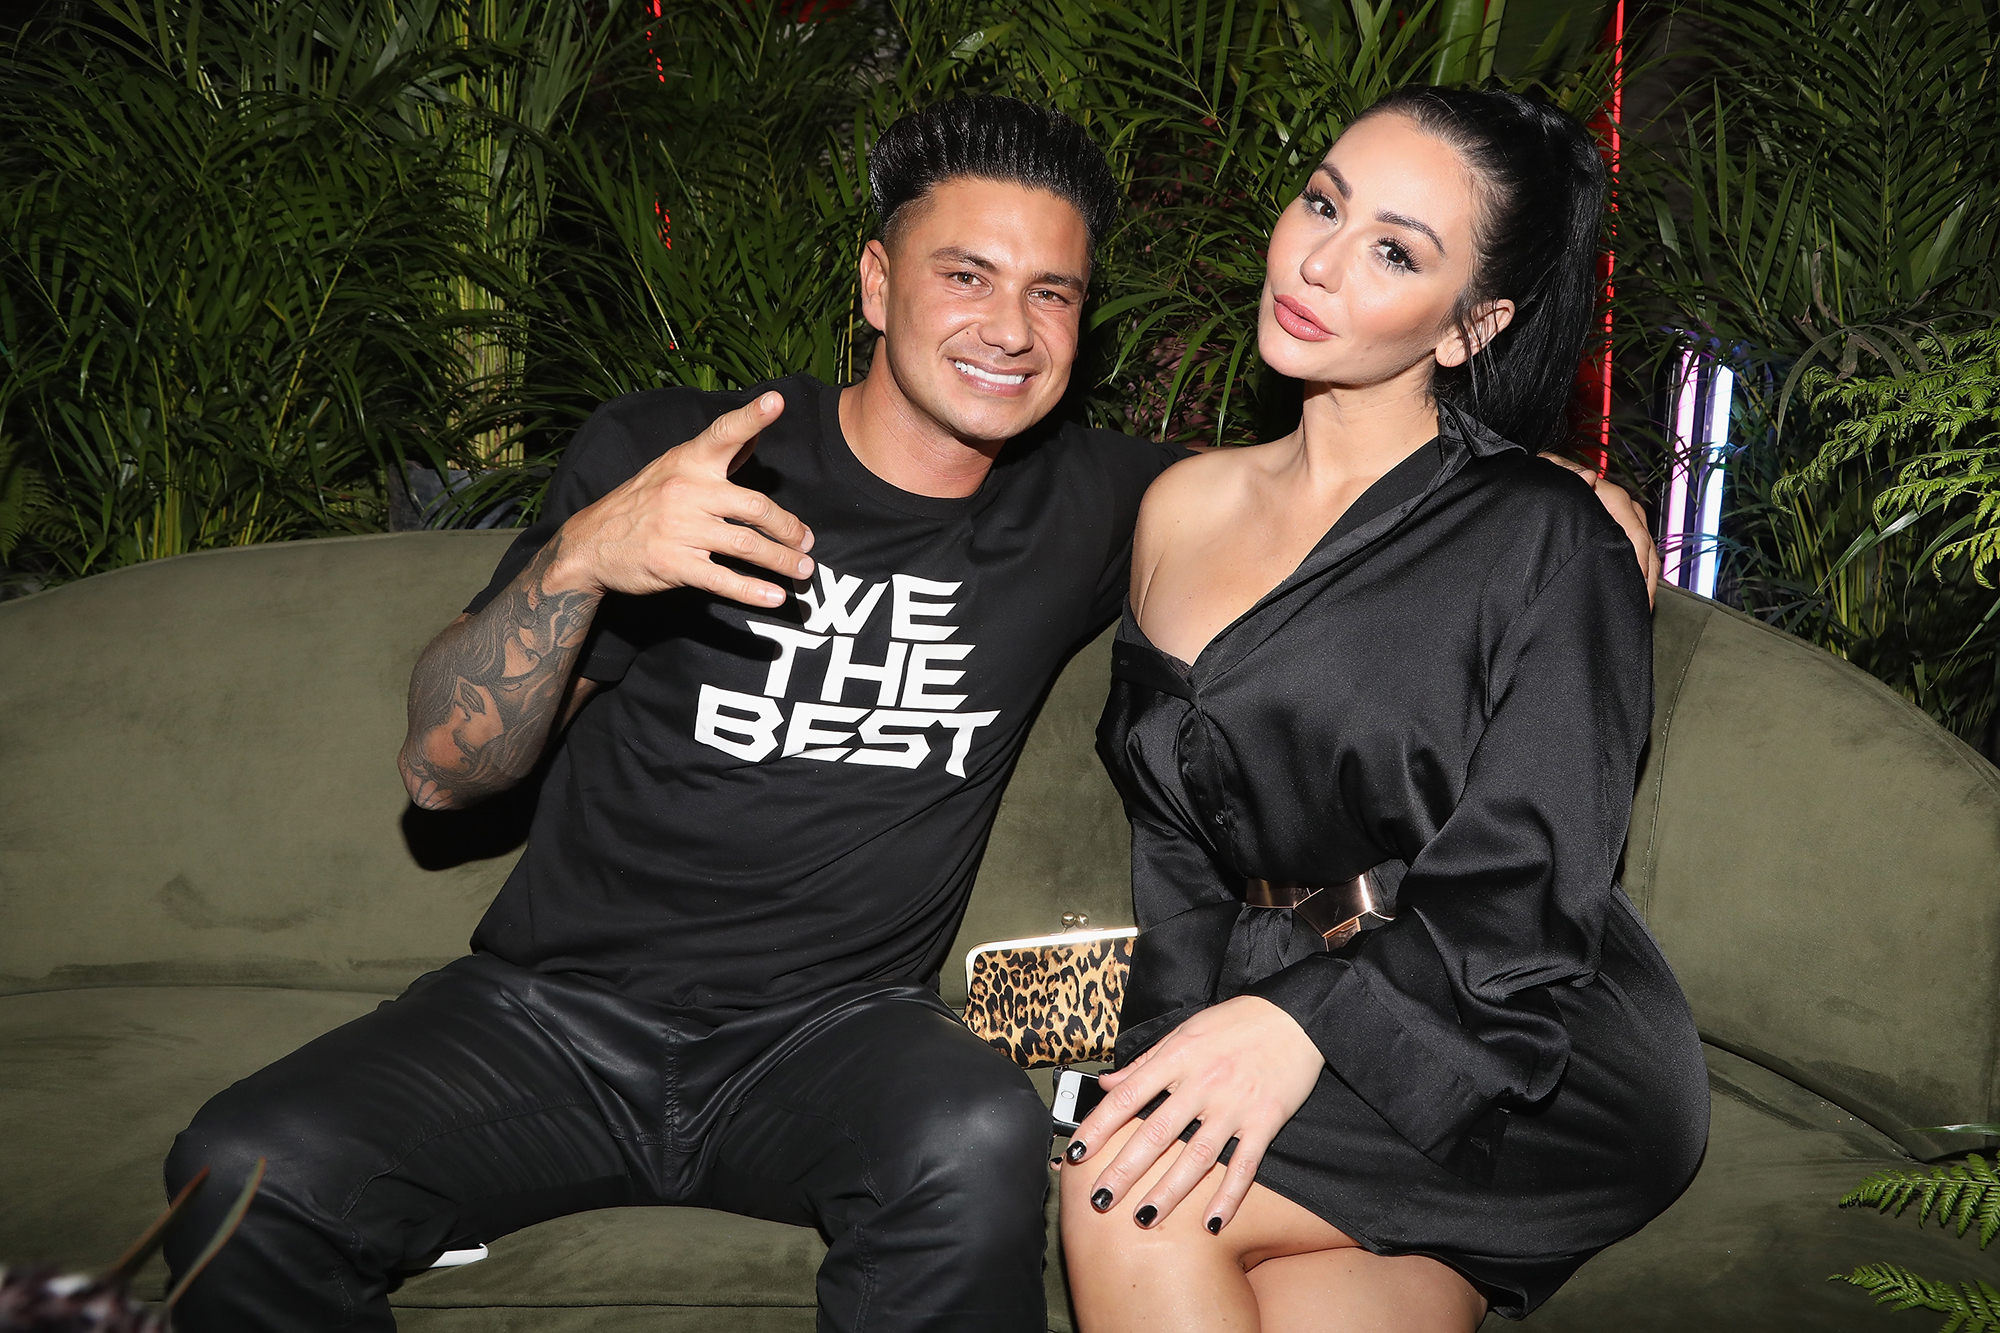 DJ Pauly D Reveals If He Would Date 'Jersey Shore' Costar Jenni 'JWoww' Farley Her Divorce - DJ Pauly D and JWoww.